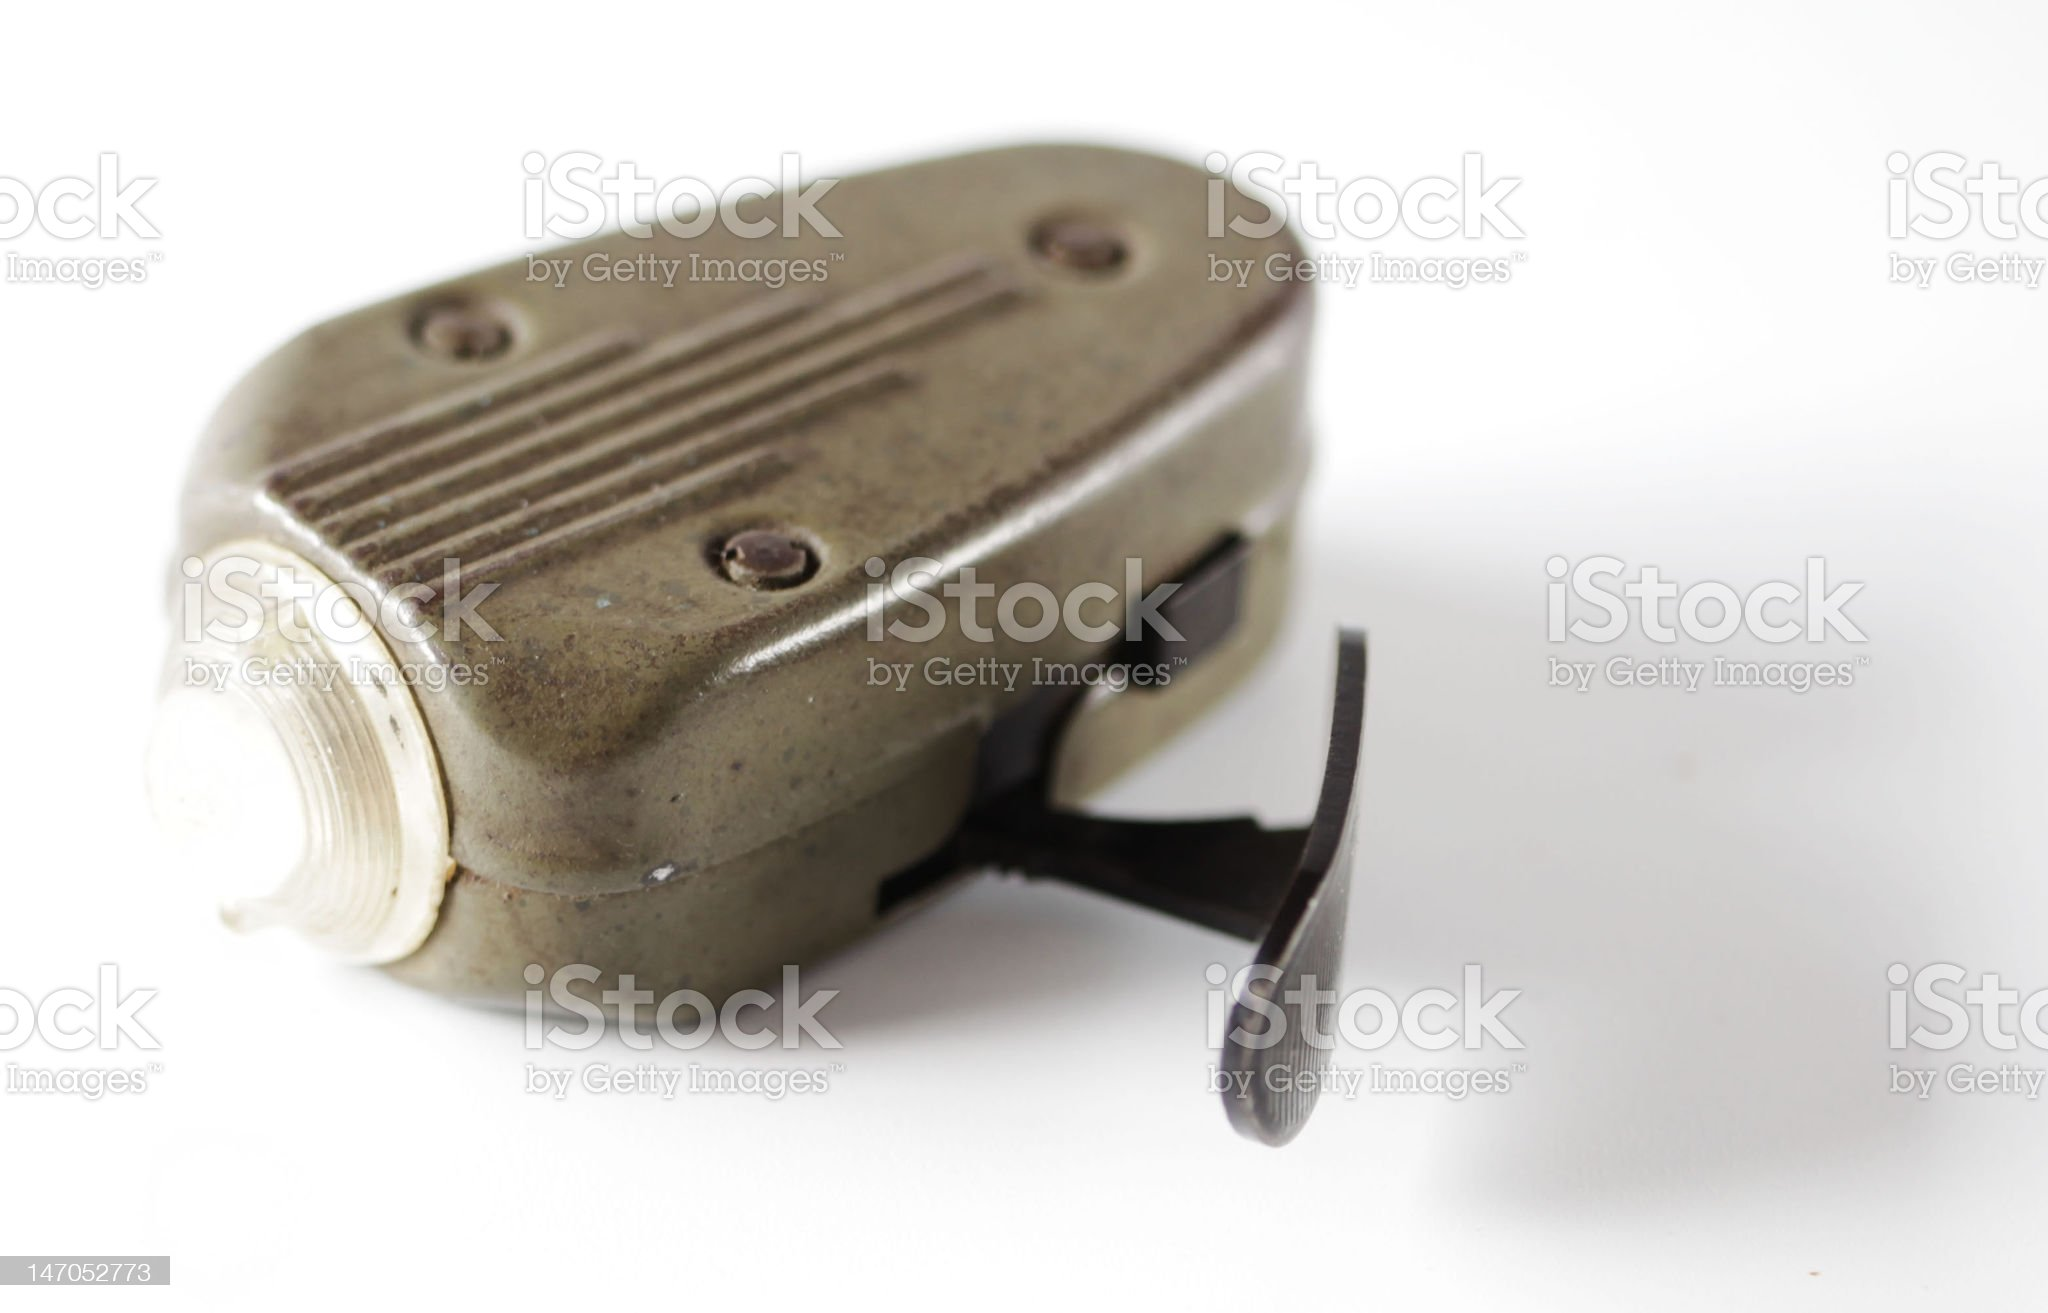 Antique manual squeeze torch light using self made energy. royalty-free stock photo